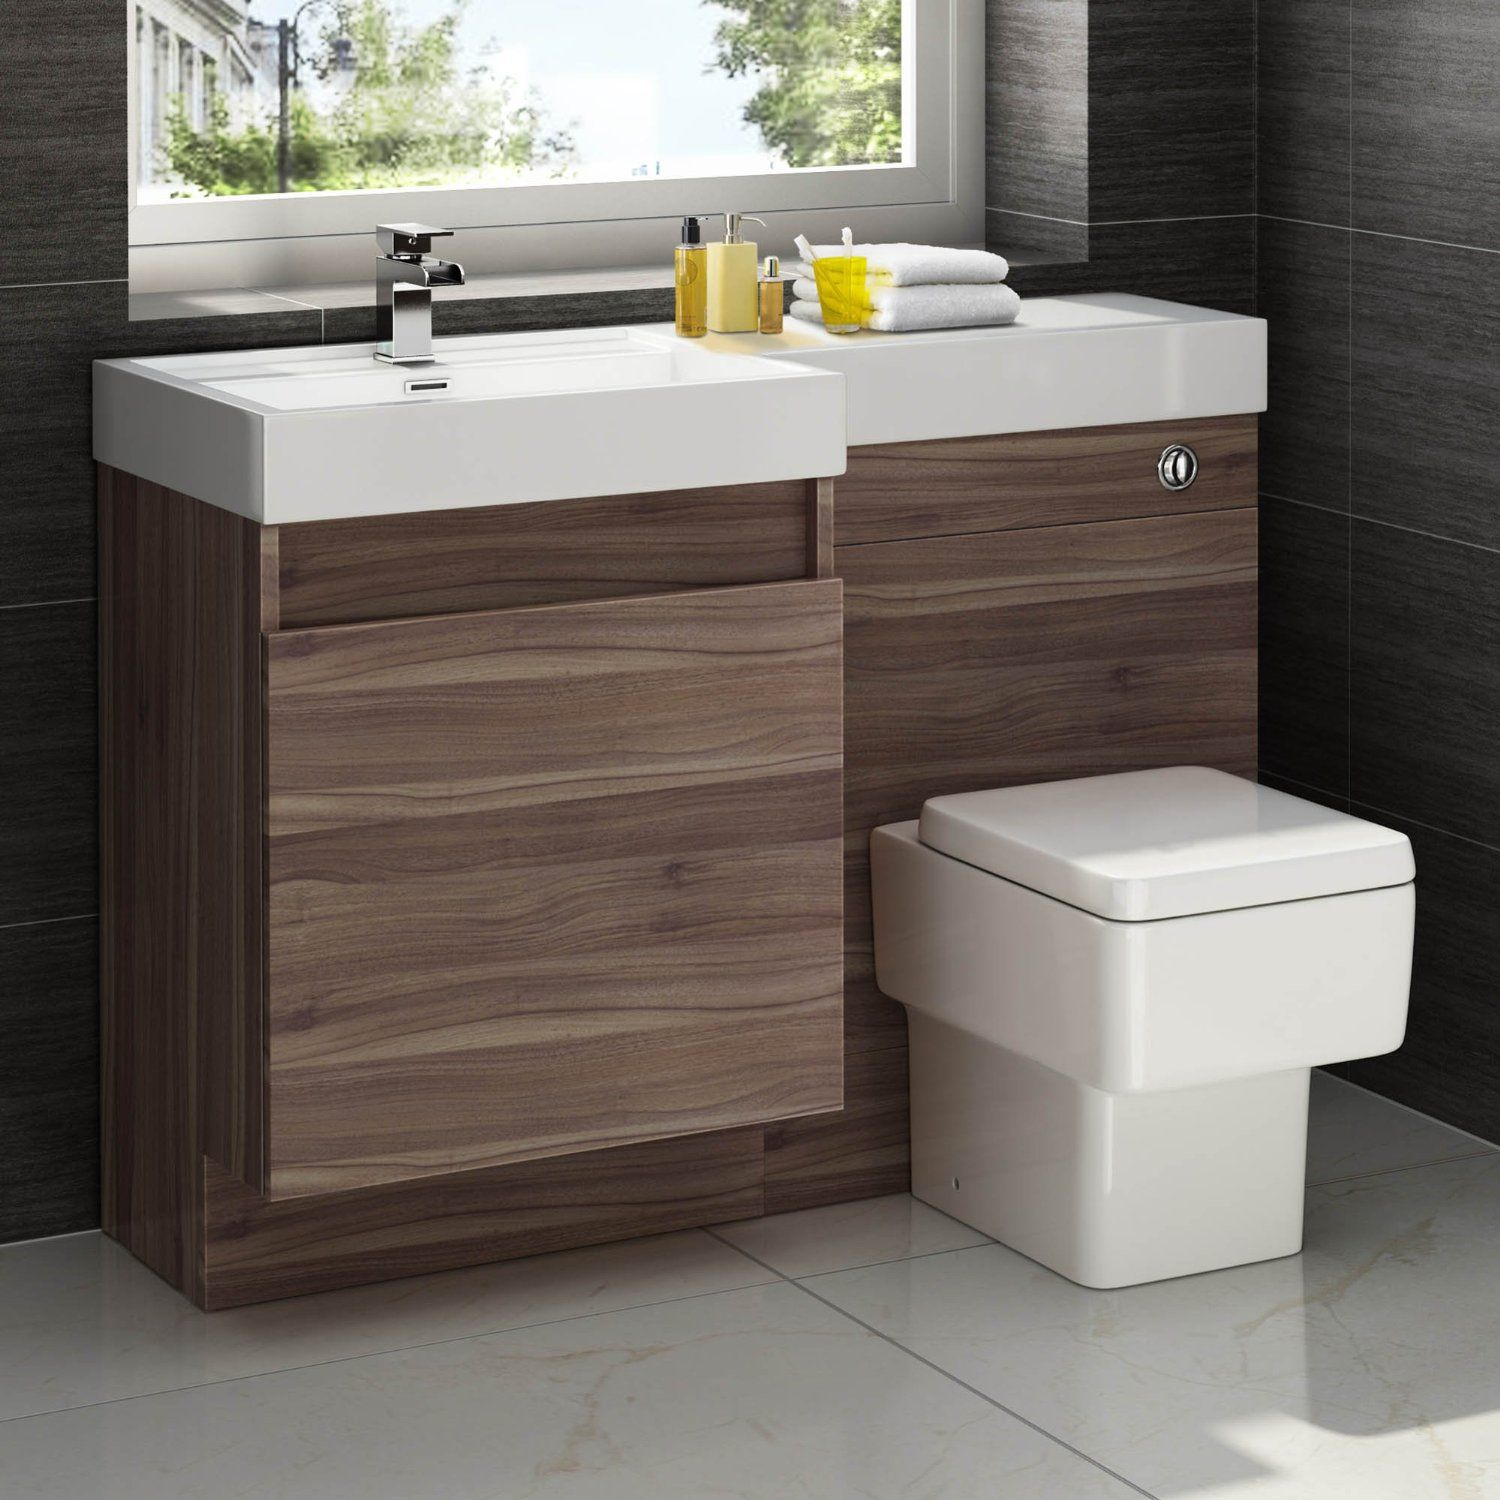 1200mm Walnut Vanity Unit Square Toilet Bathroom Sink Left Hand Storage  Furniture: Ibath: Amazon